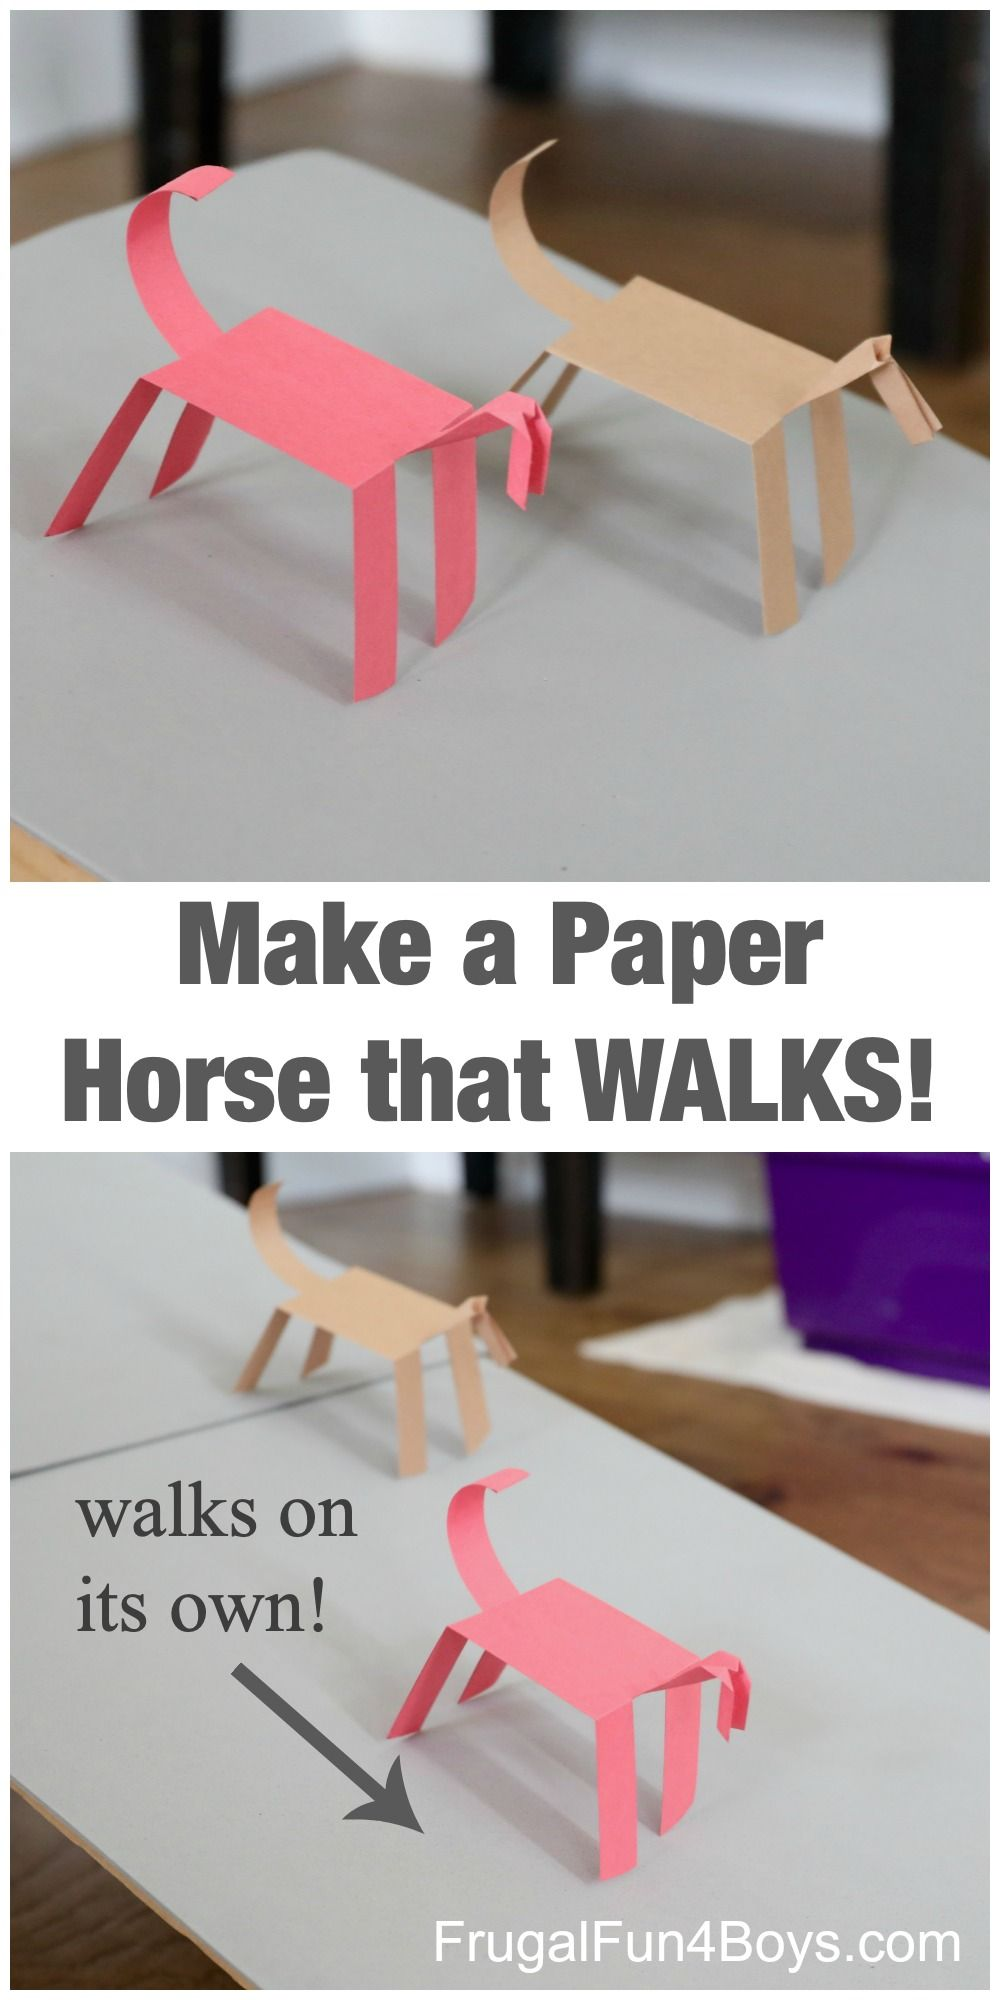 Make a Paper Horse that WALKS! - Frugal Fun For Boys and Girls